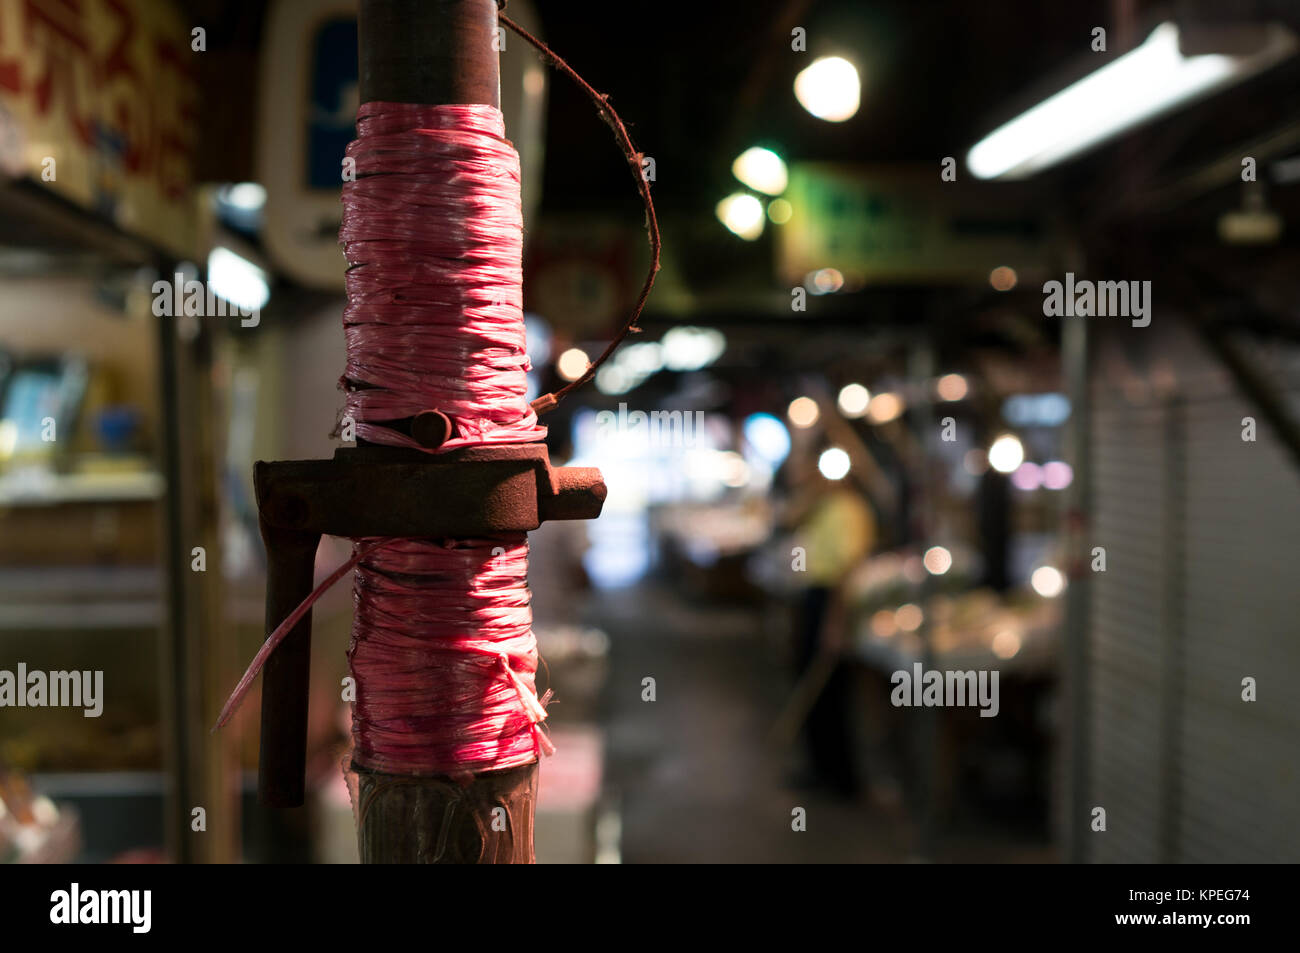 Pole tied up - Stock Image